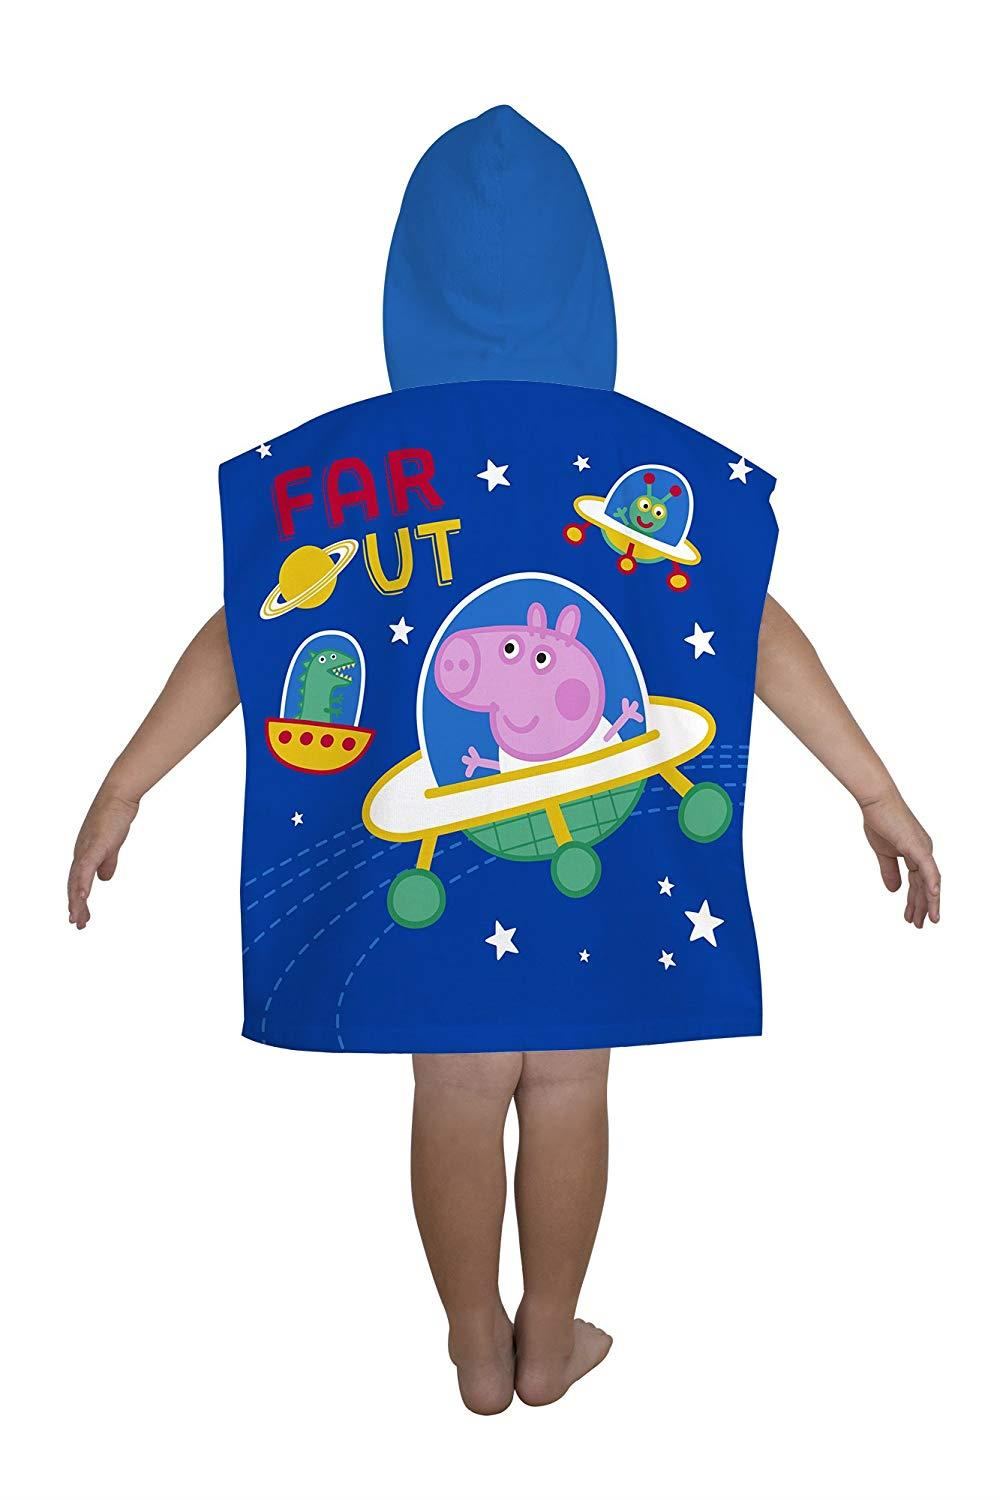 Kids-Boys-Novelty-Girls-Character-Hooded-Towel-Poncho-Beach-Bath-Swim thumbnail 4